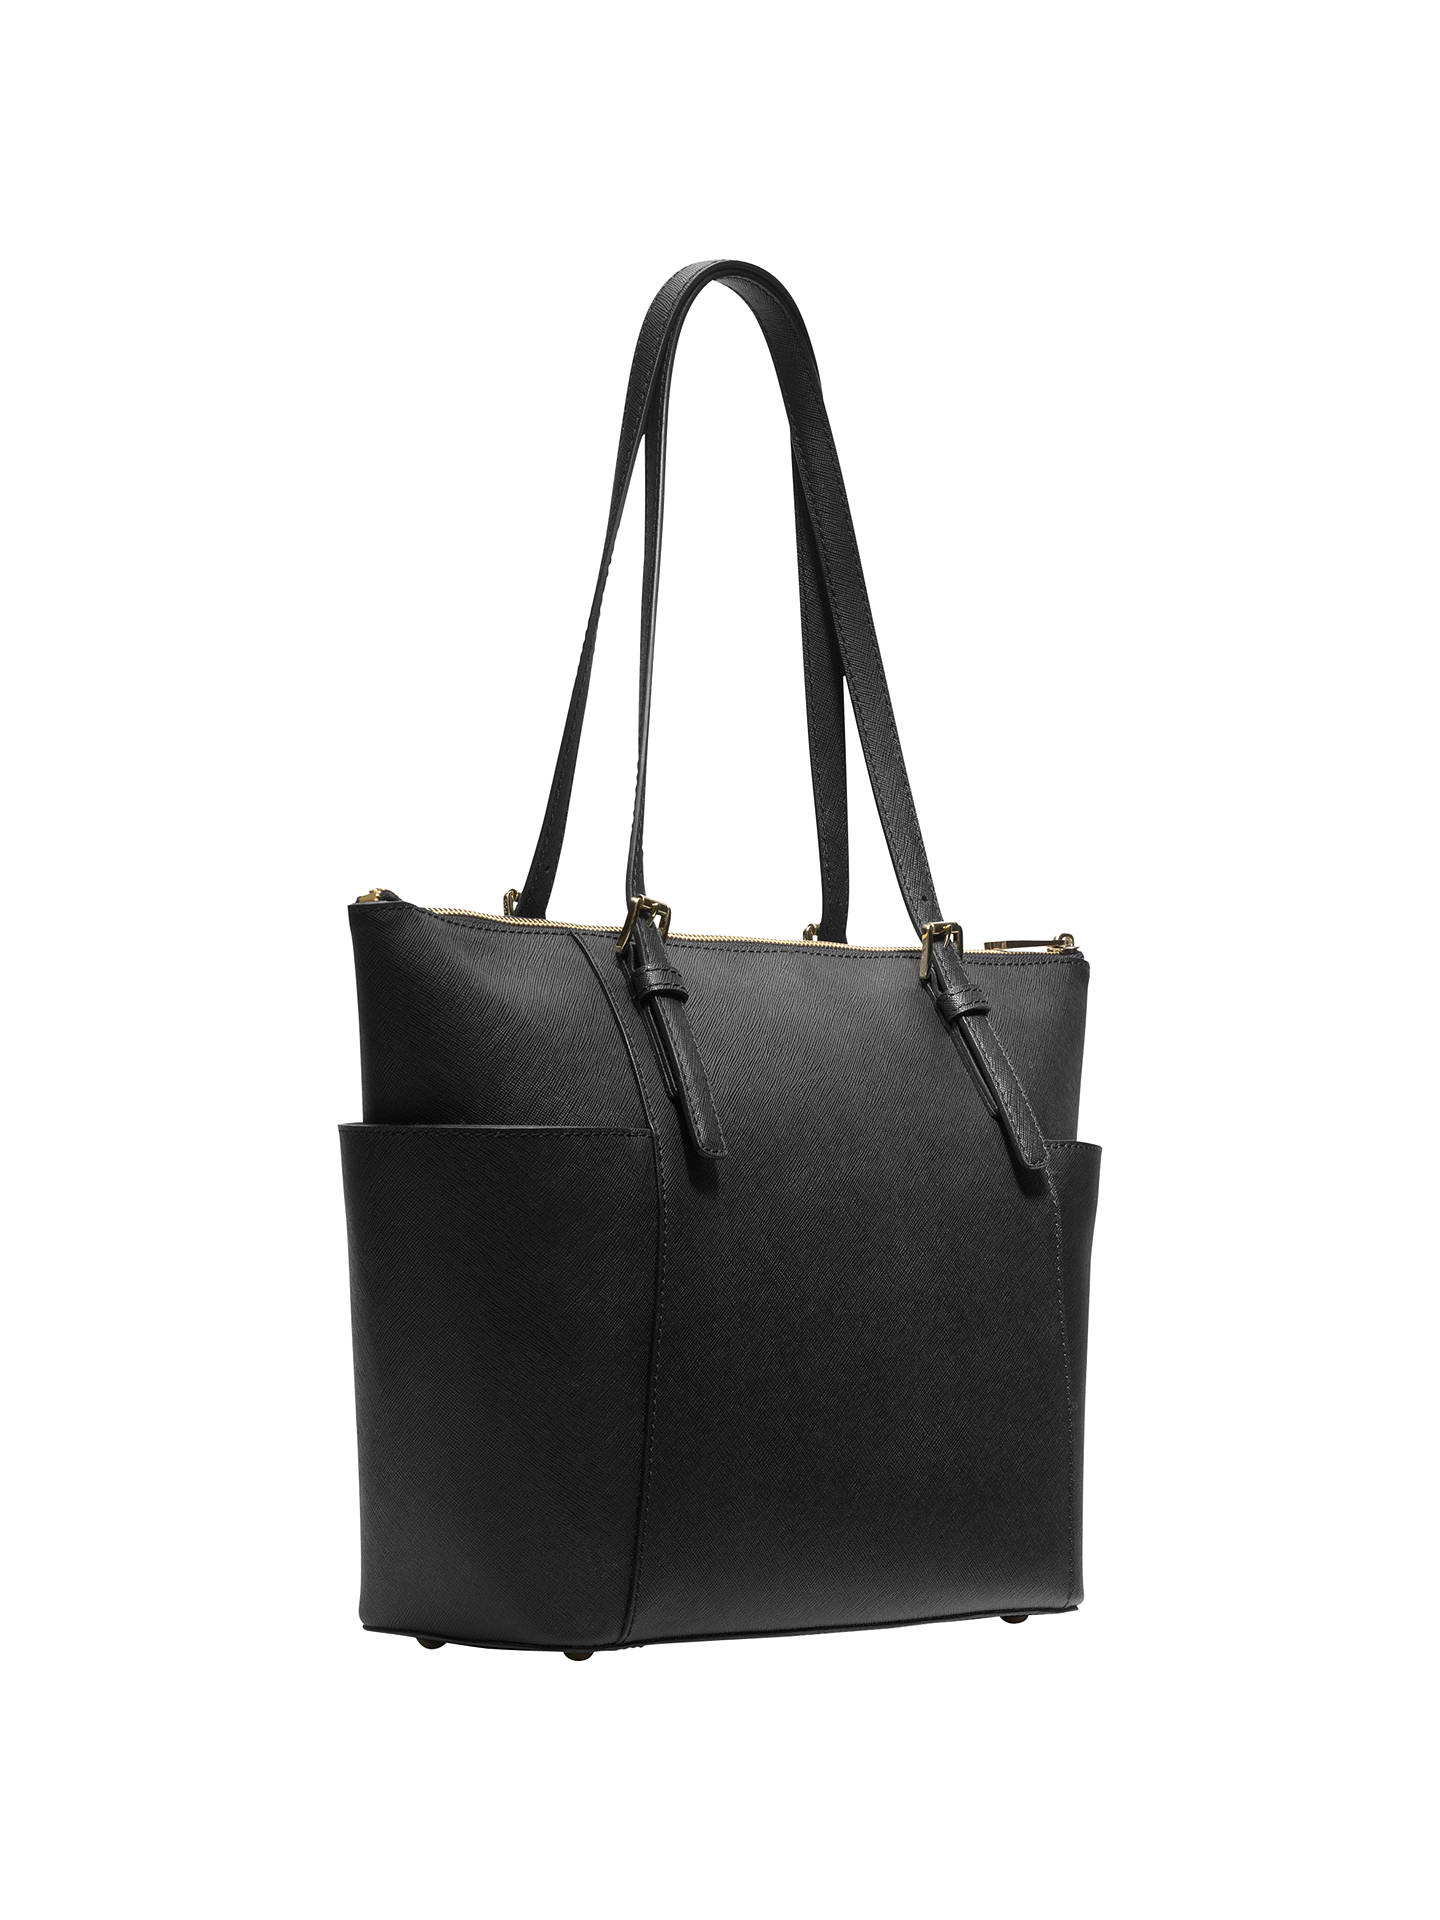 194a0570d54f ... Buy MICHAEL Michael Kors Jet Set East/West Leather Tote Bag, Black  Online at ...